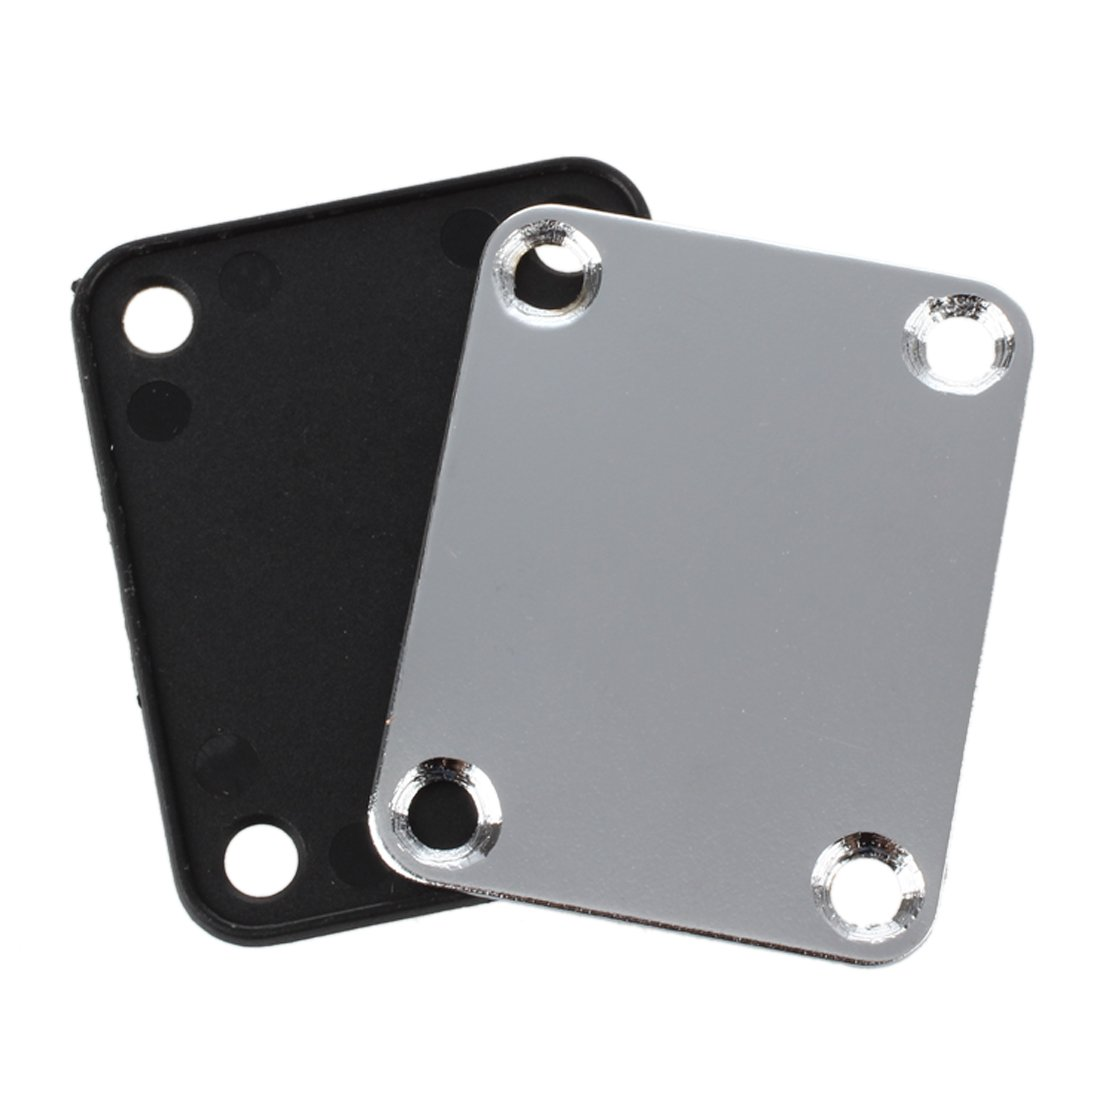 SODIAL(R) Chrome Guitar Neck Plate With One Rubbermat Stratocaster Telecaster